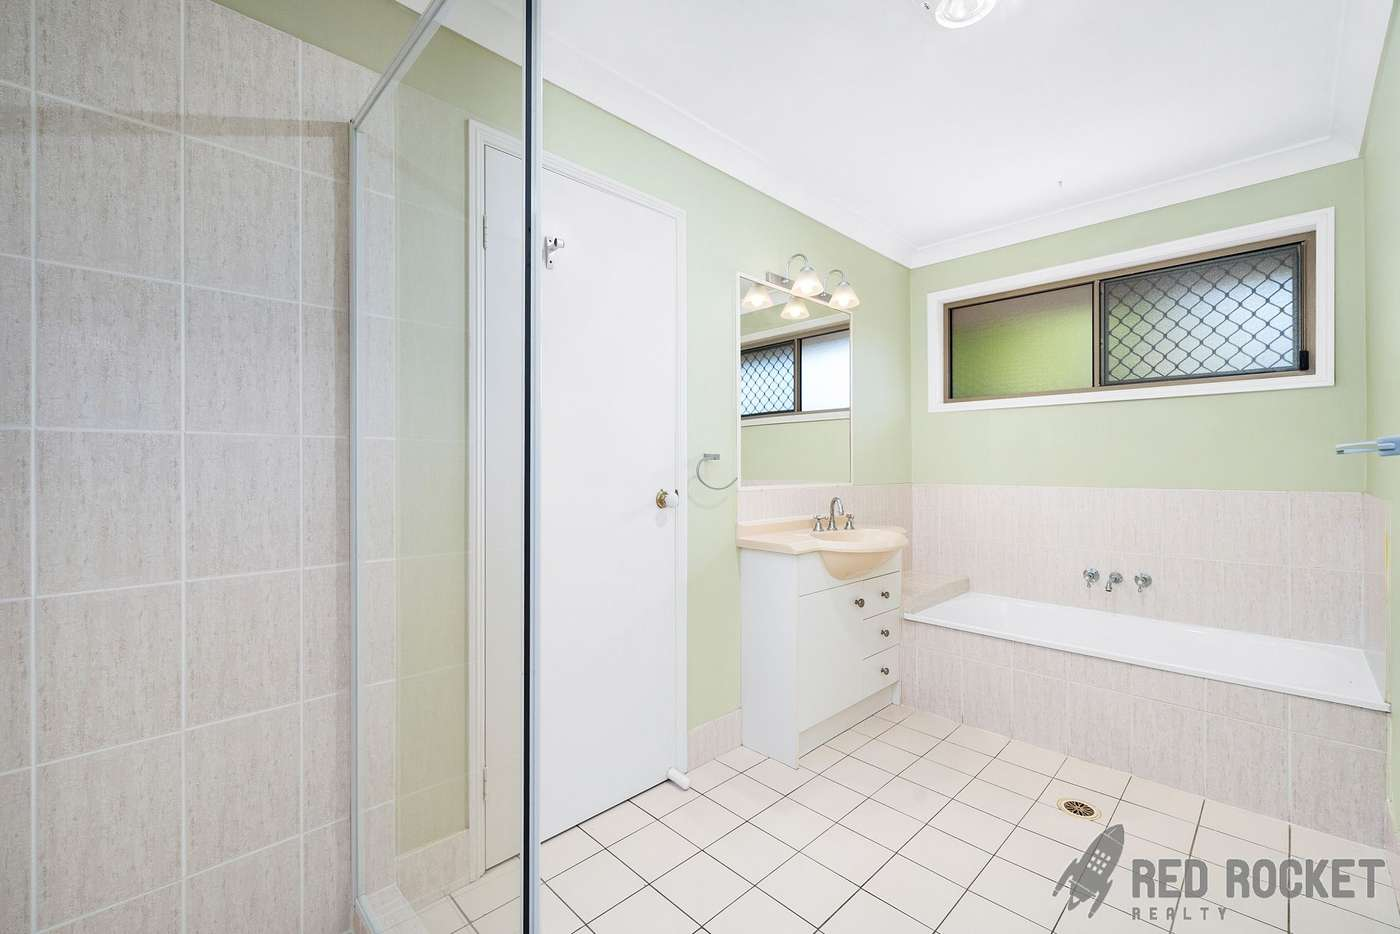 Sixth view of Homely house listing, 113 Pohon Drive, Tanah Merah QLD 4128